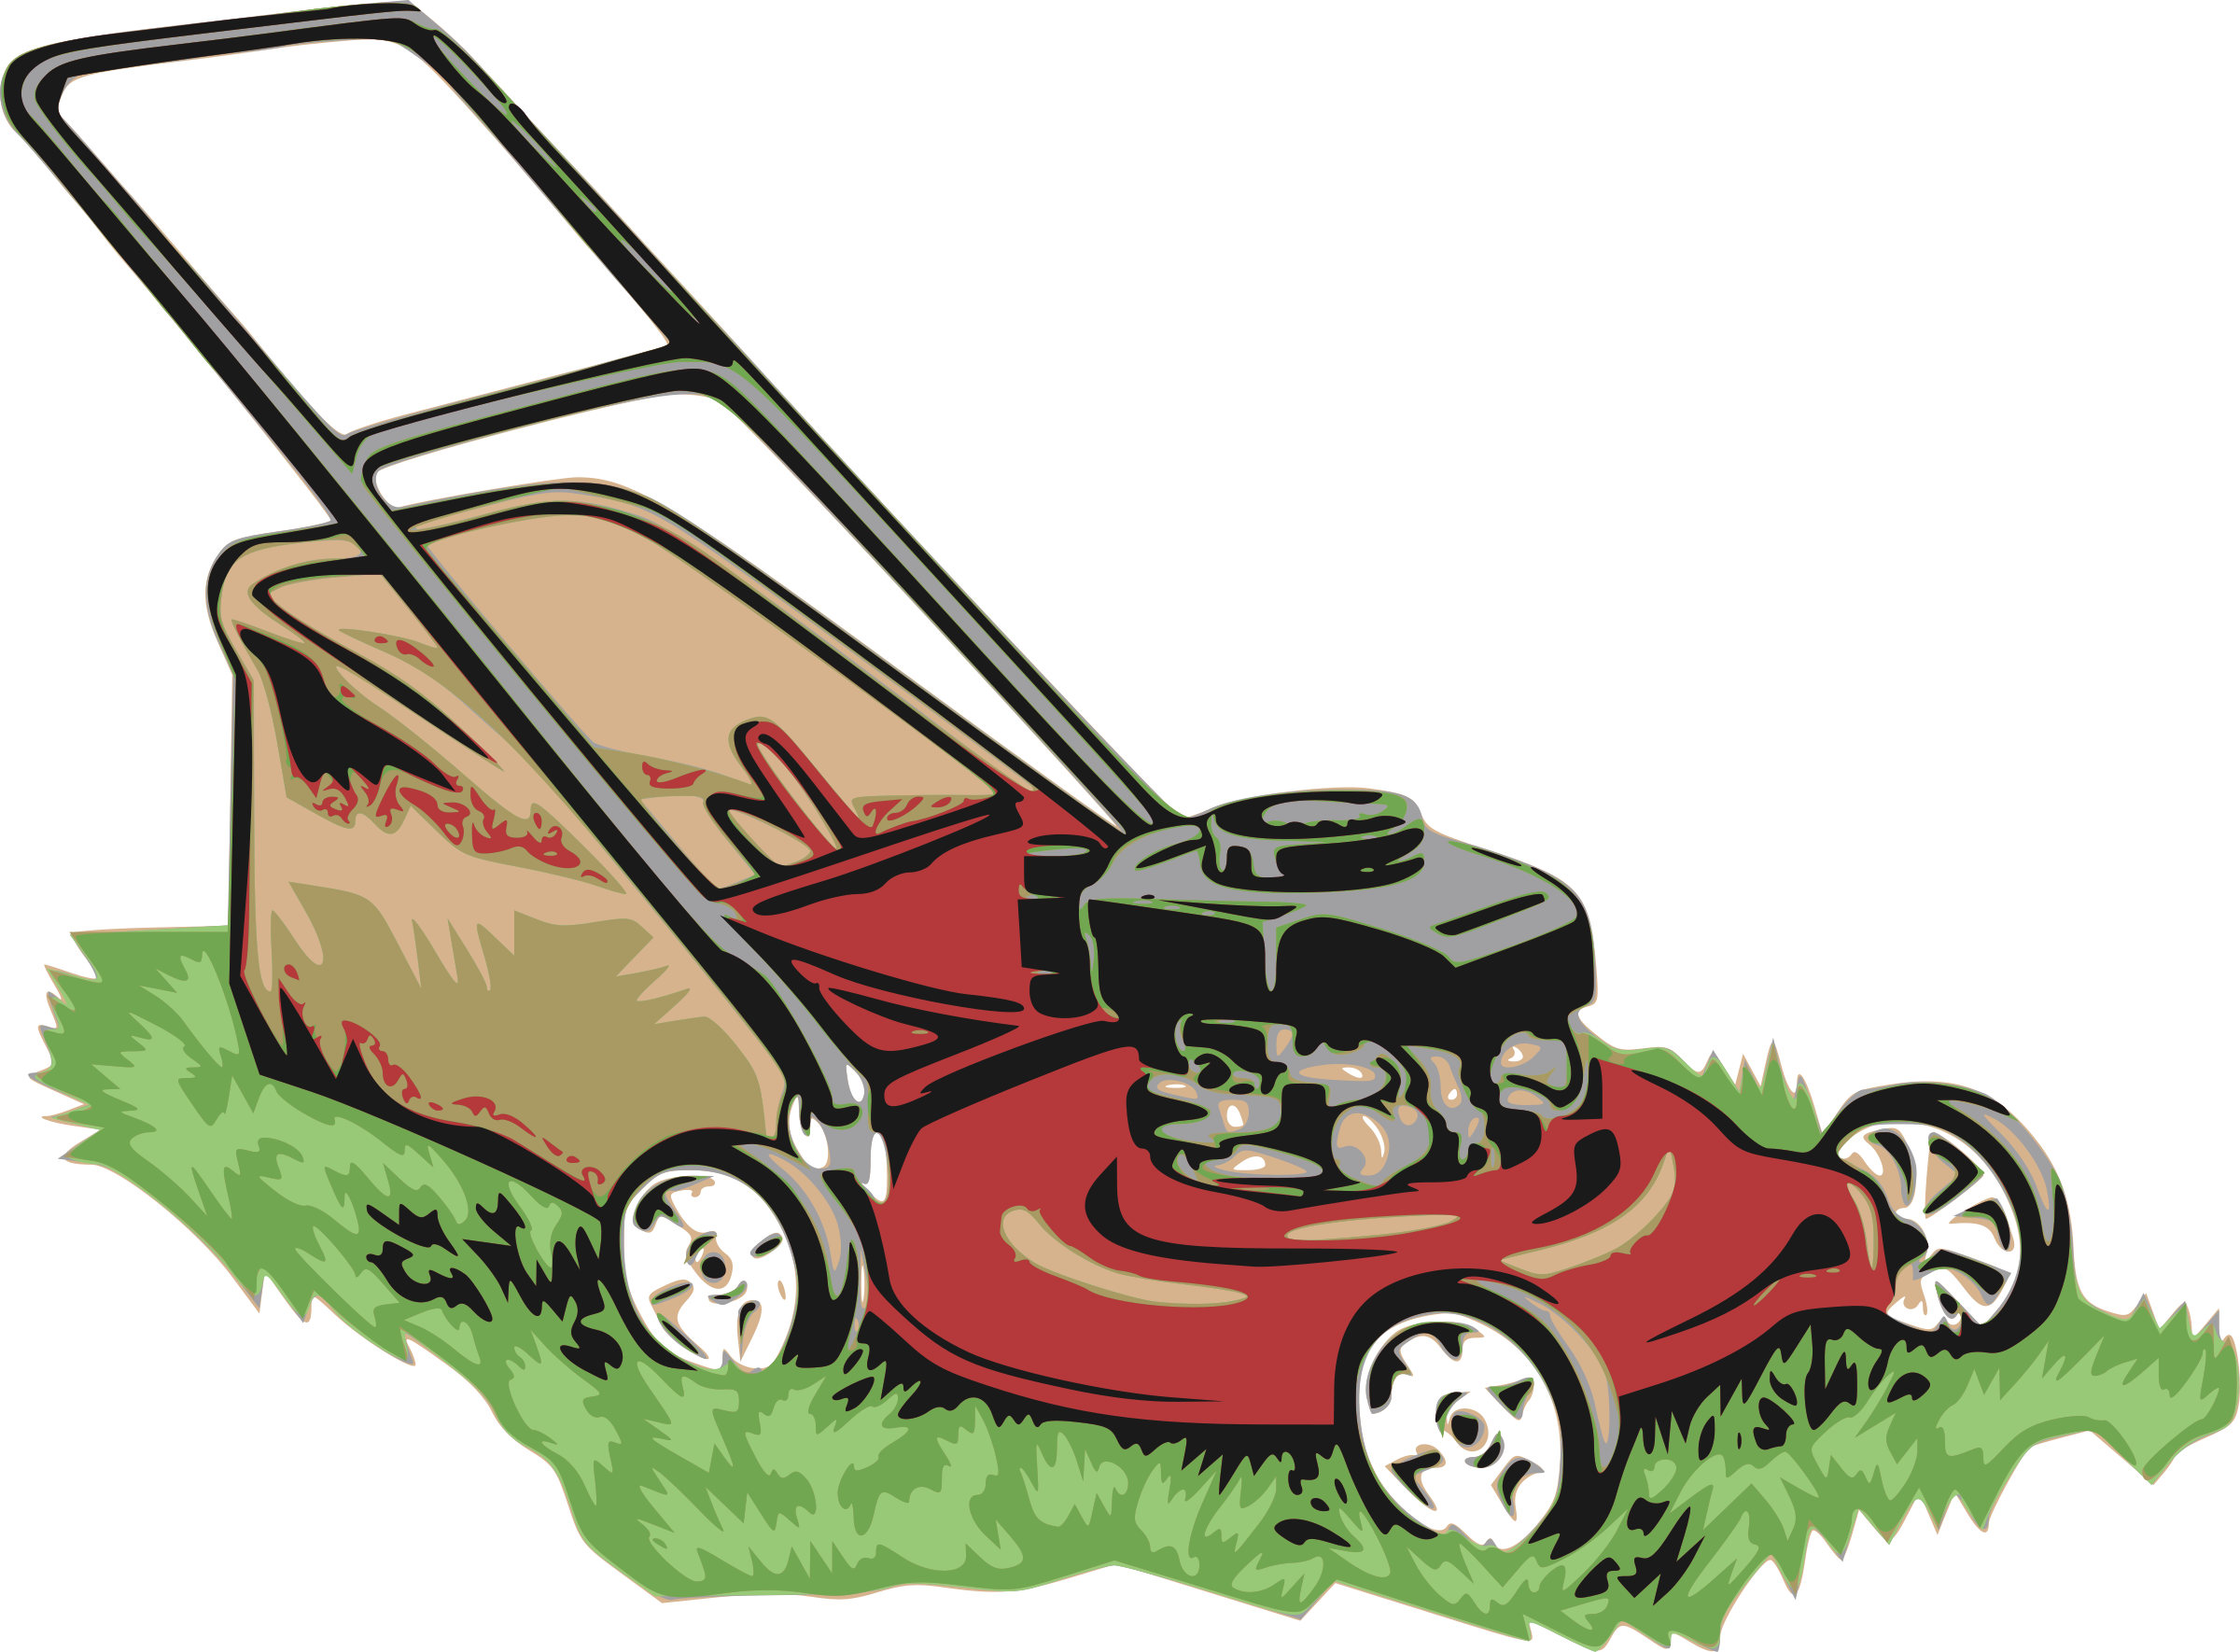 clipart red lawnmower lawn mower clipart images lawn mower clipart images